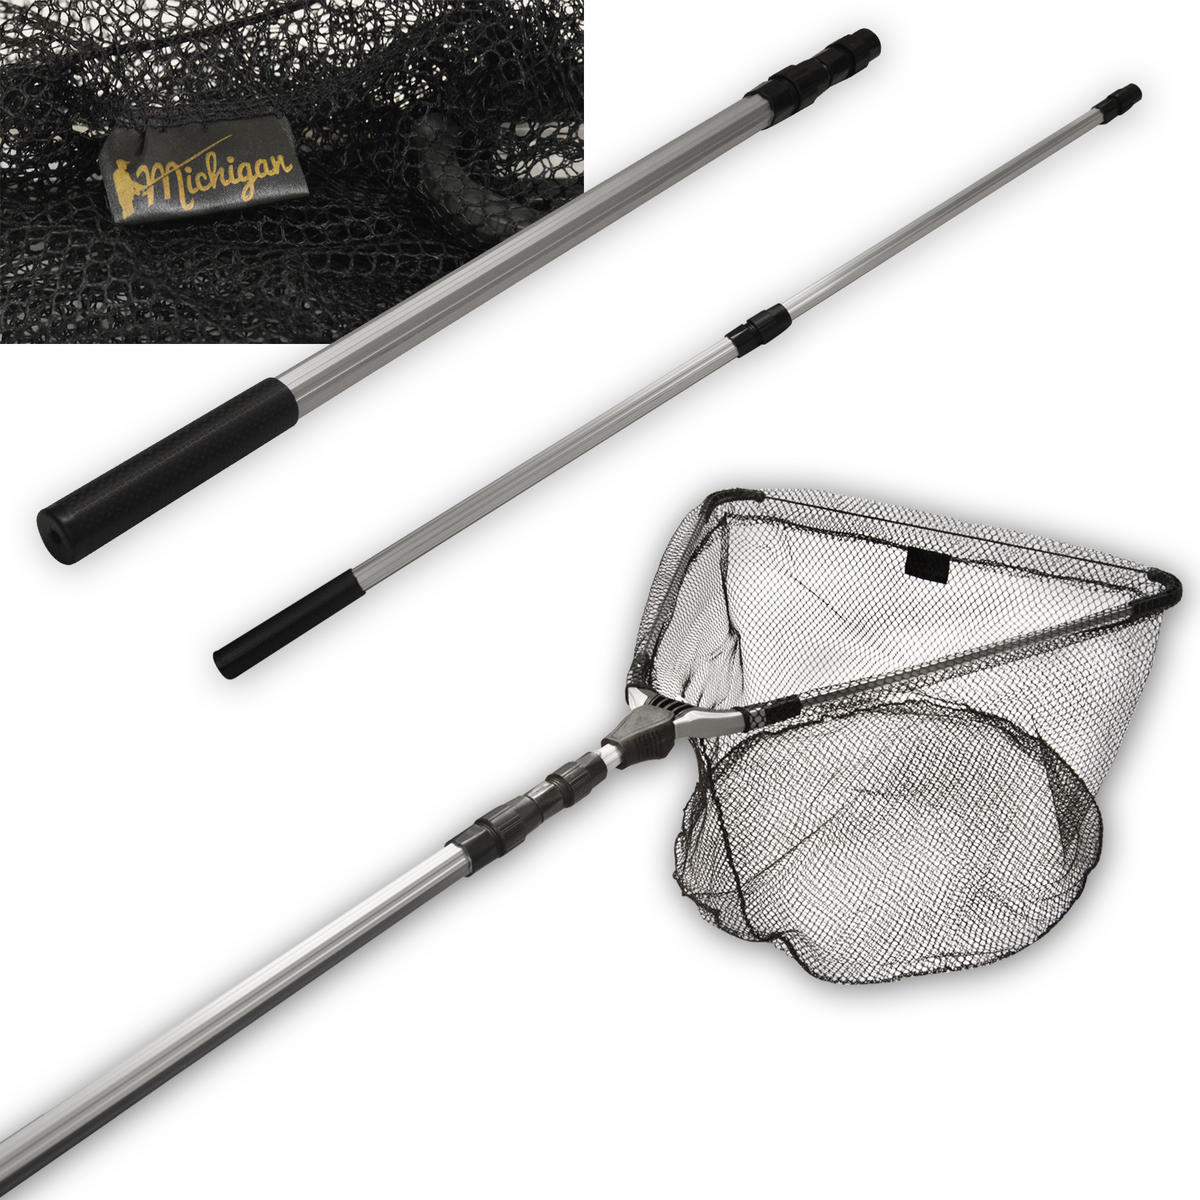 Michigan telescopic fishing net 1 3 1 7m 50cm head for Telescoping fishing net